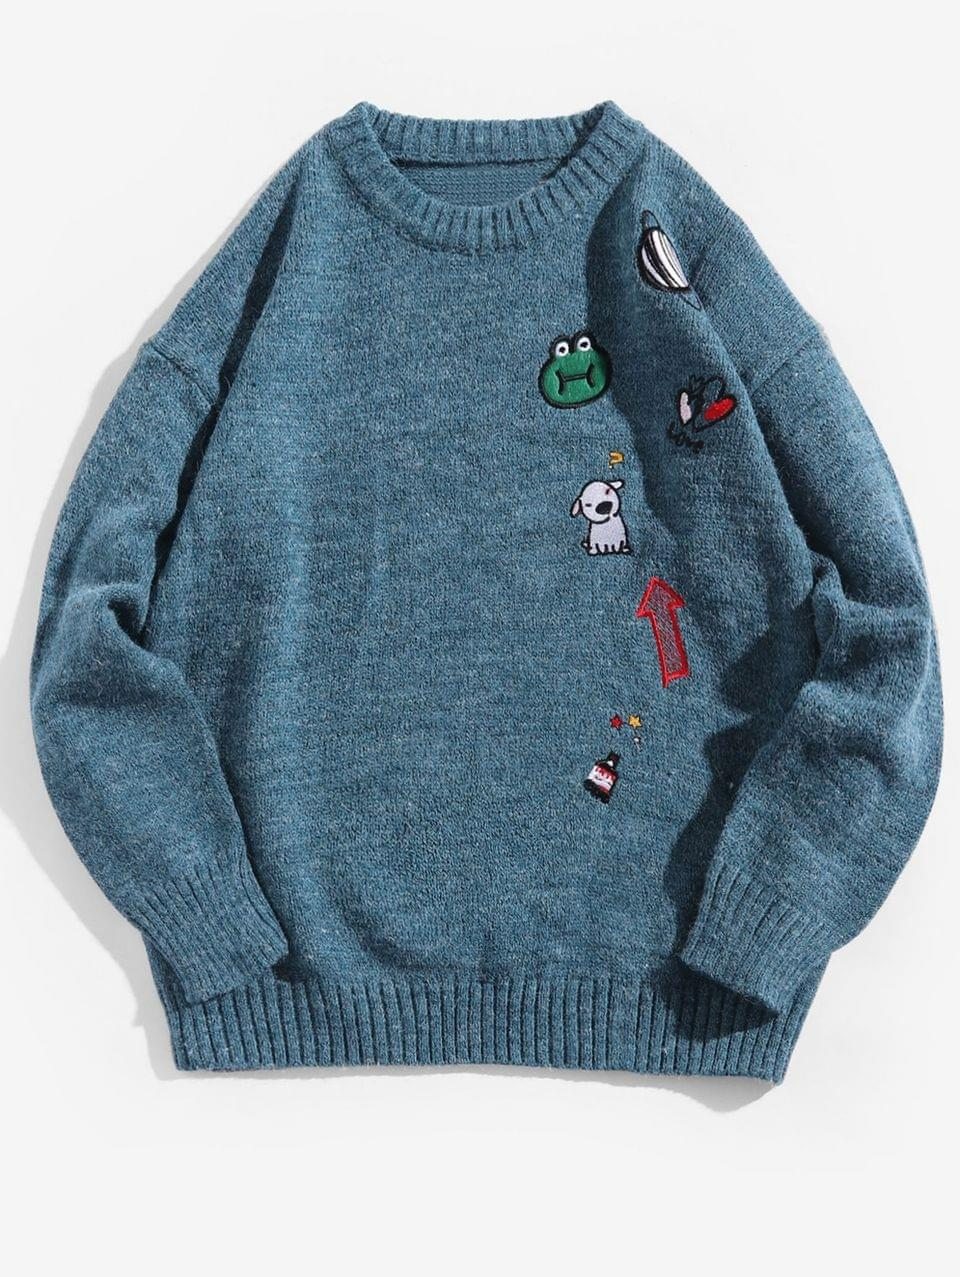 Men's Animal Planet Embroidery Graphic Crew Neck Sweater - Silk Blue M